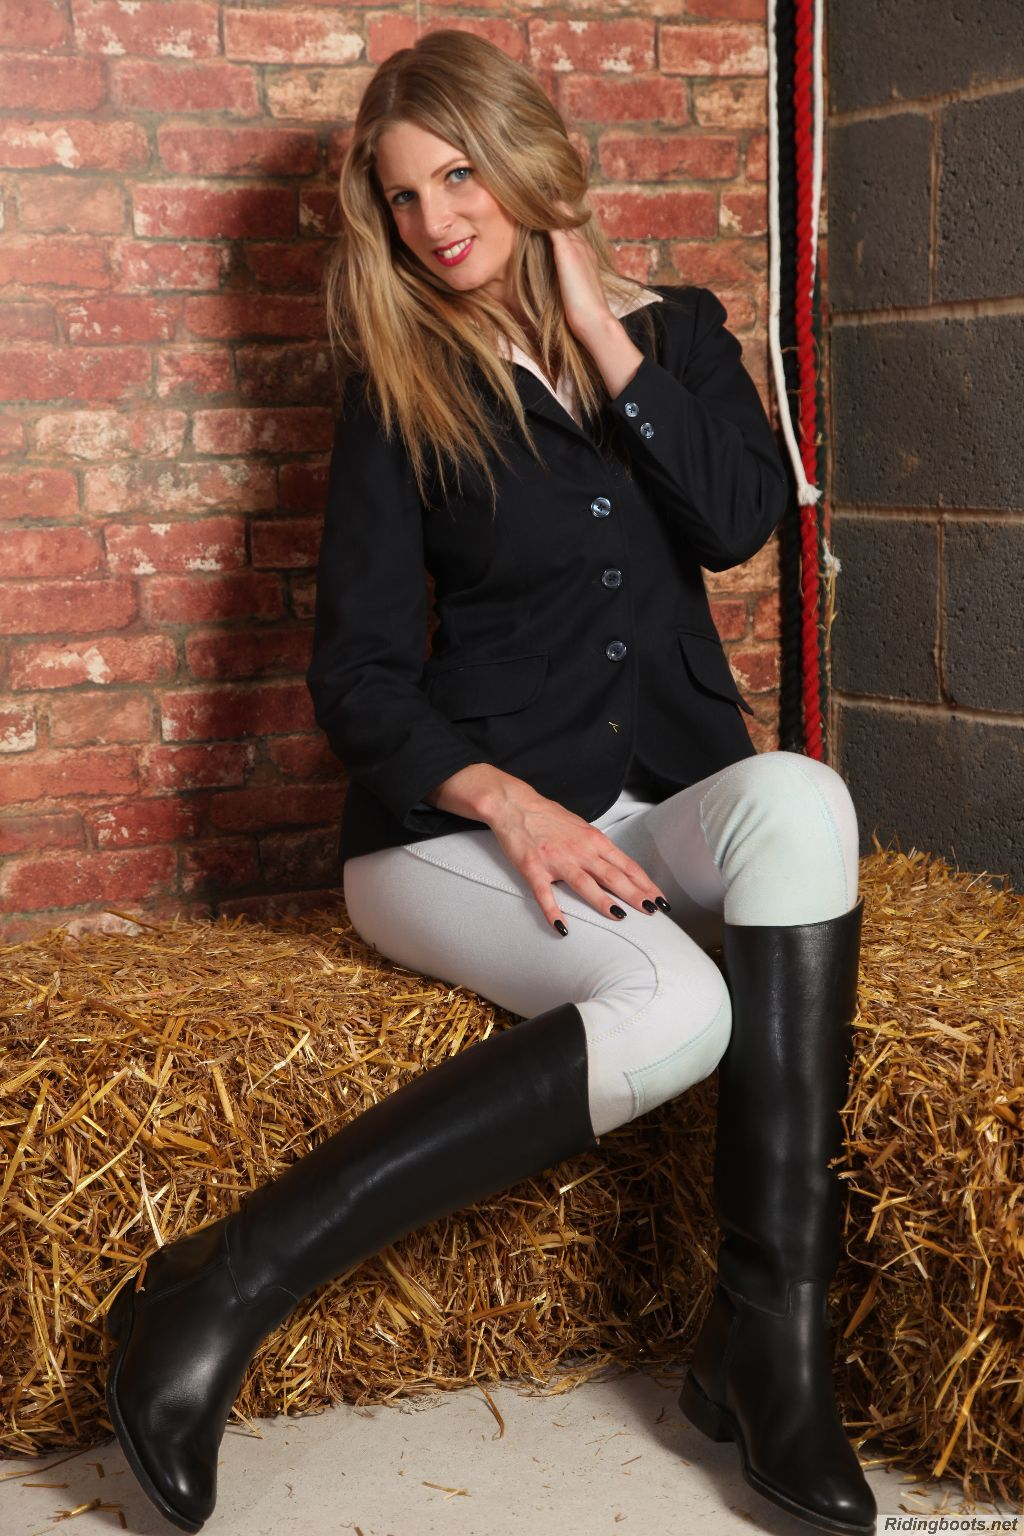 Pin Auf Rubber Riding Boots